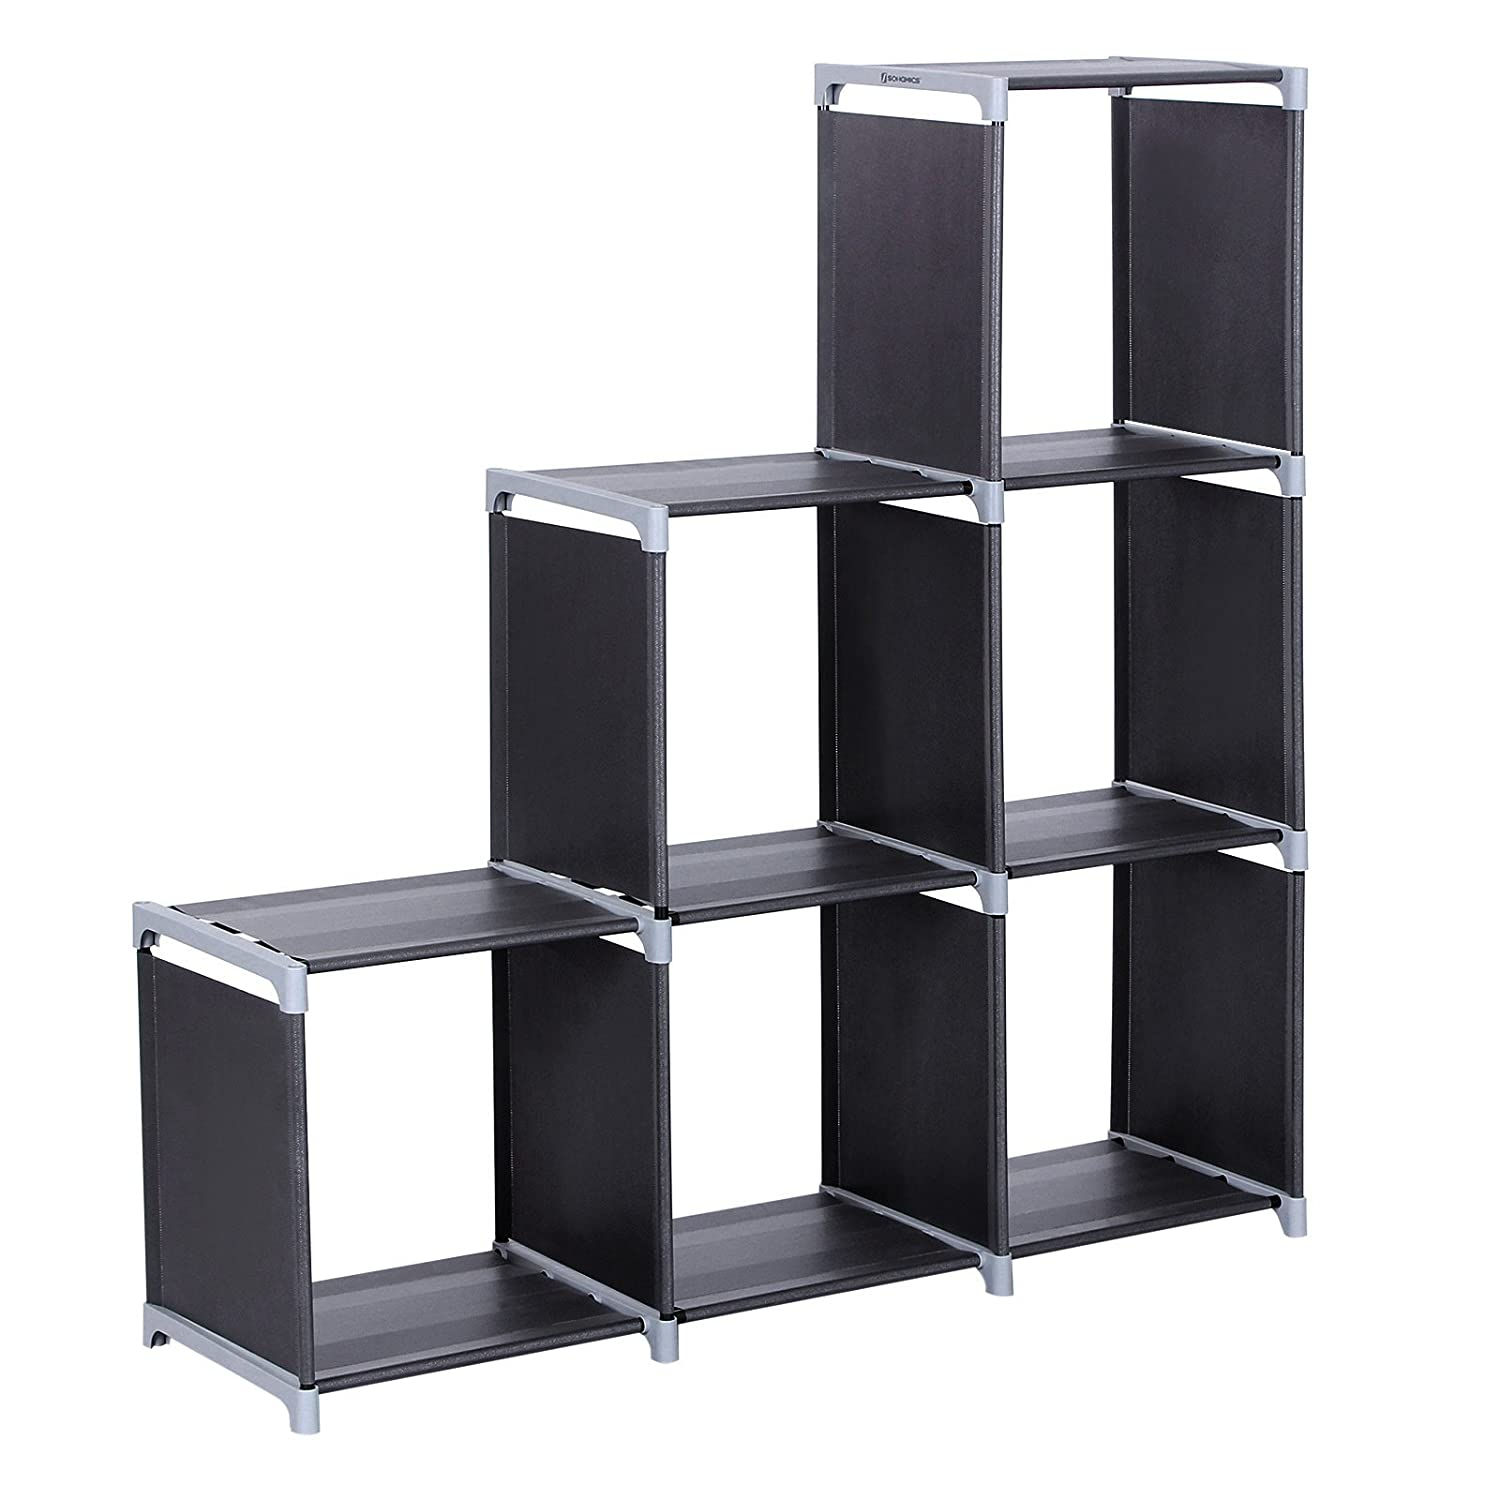 SONGMICS DIY Bookcase Display Storage Shelf Room Divider Step Rack Maximum Loading Capacity of Each Cube: 10 kg 110 x 32 x 106 cm Black LSN63H